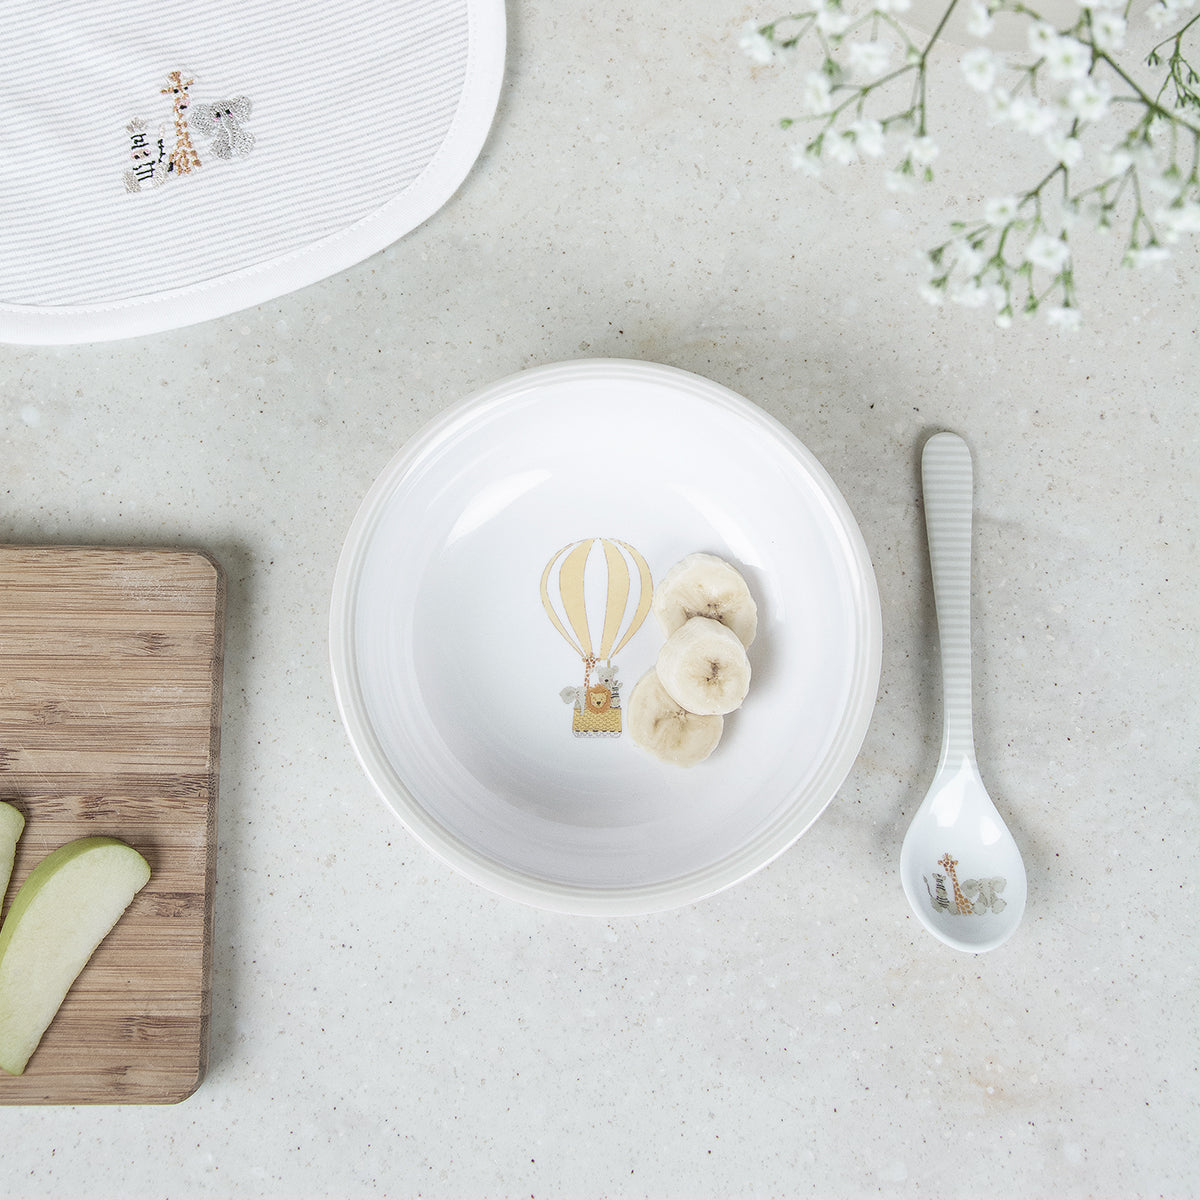 Baby Bowl by Sophie Allport